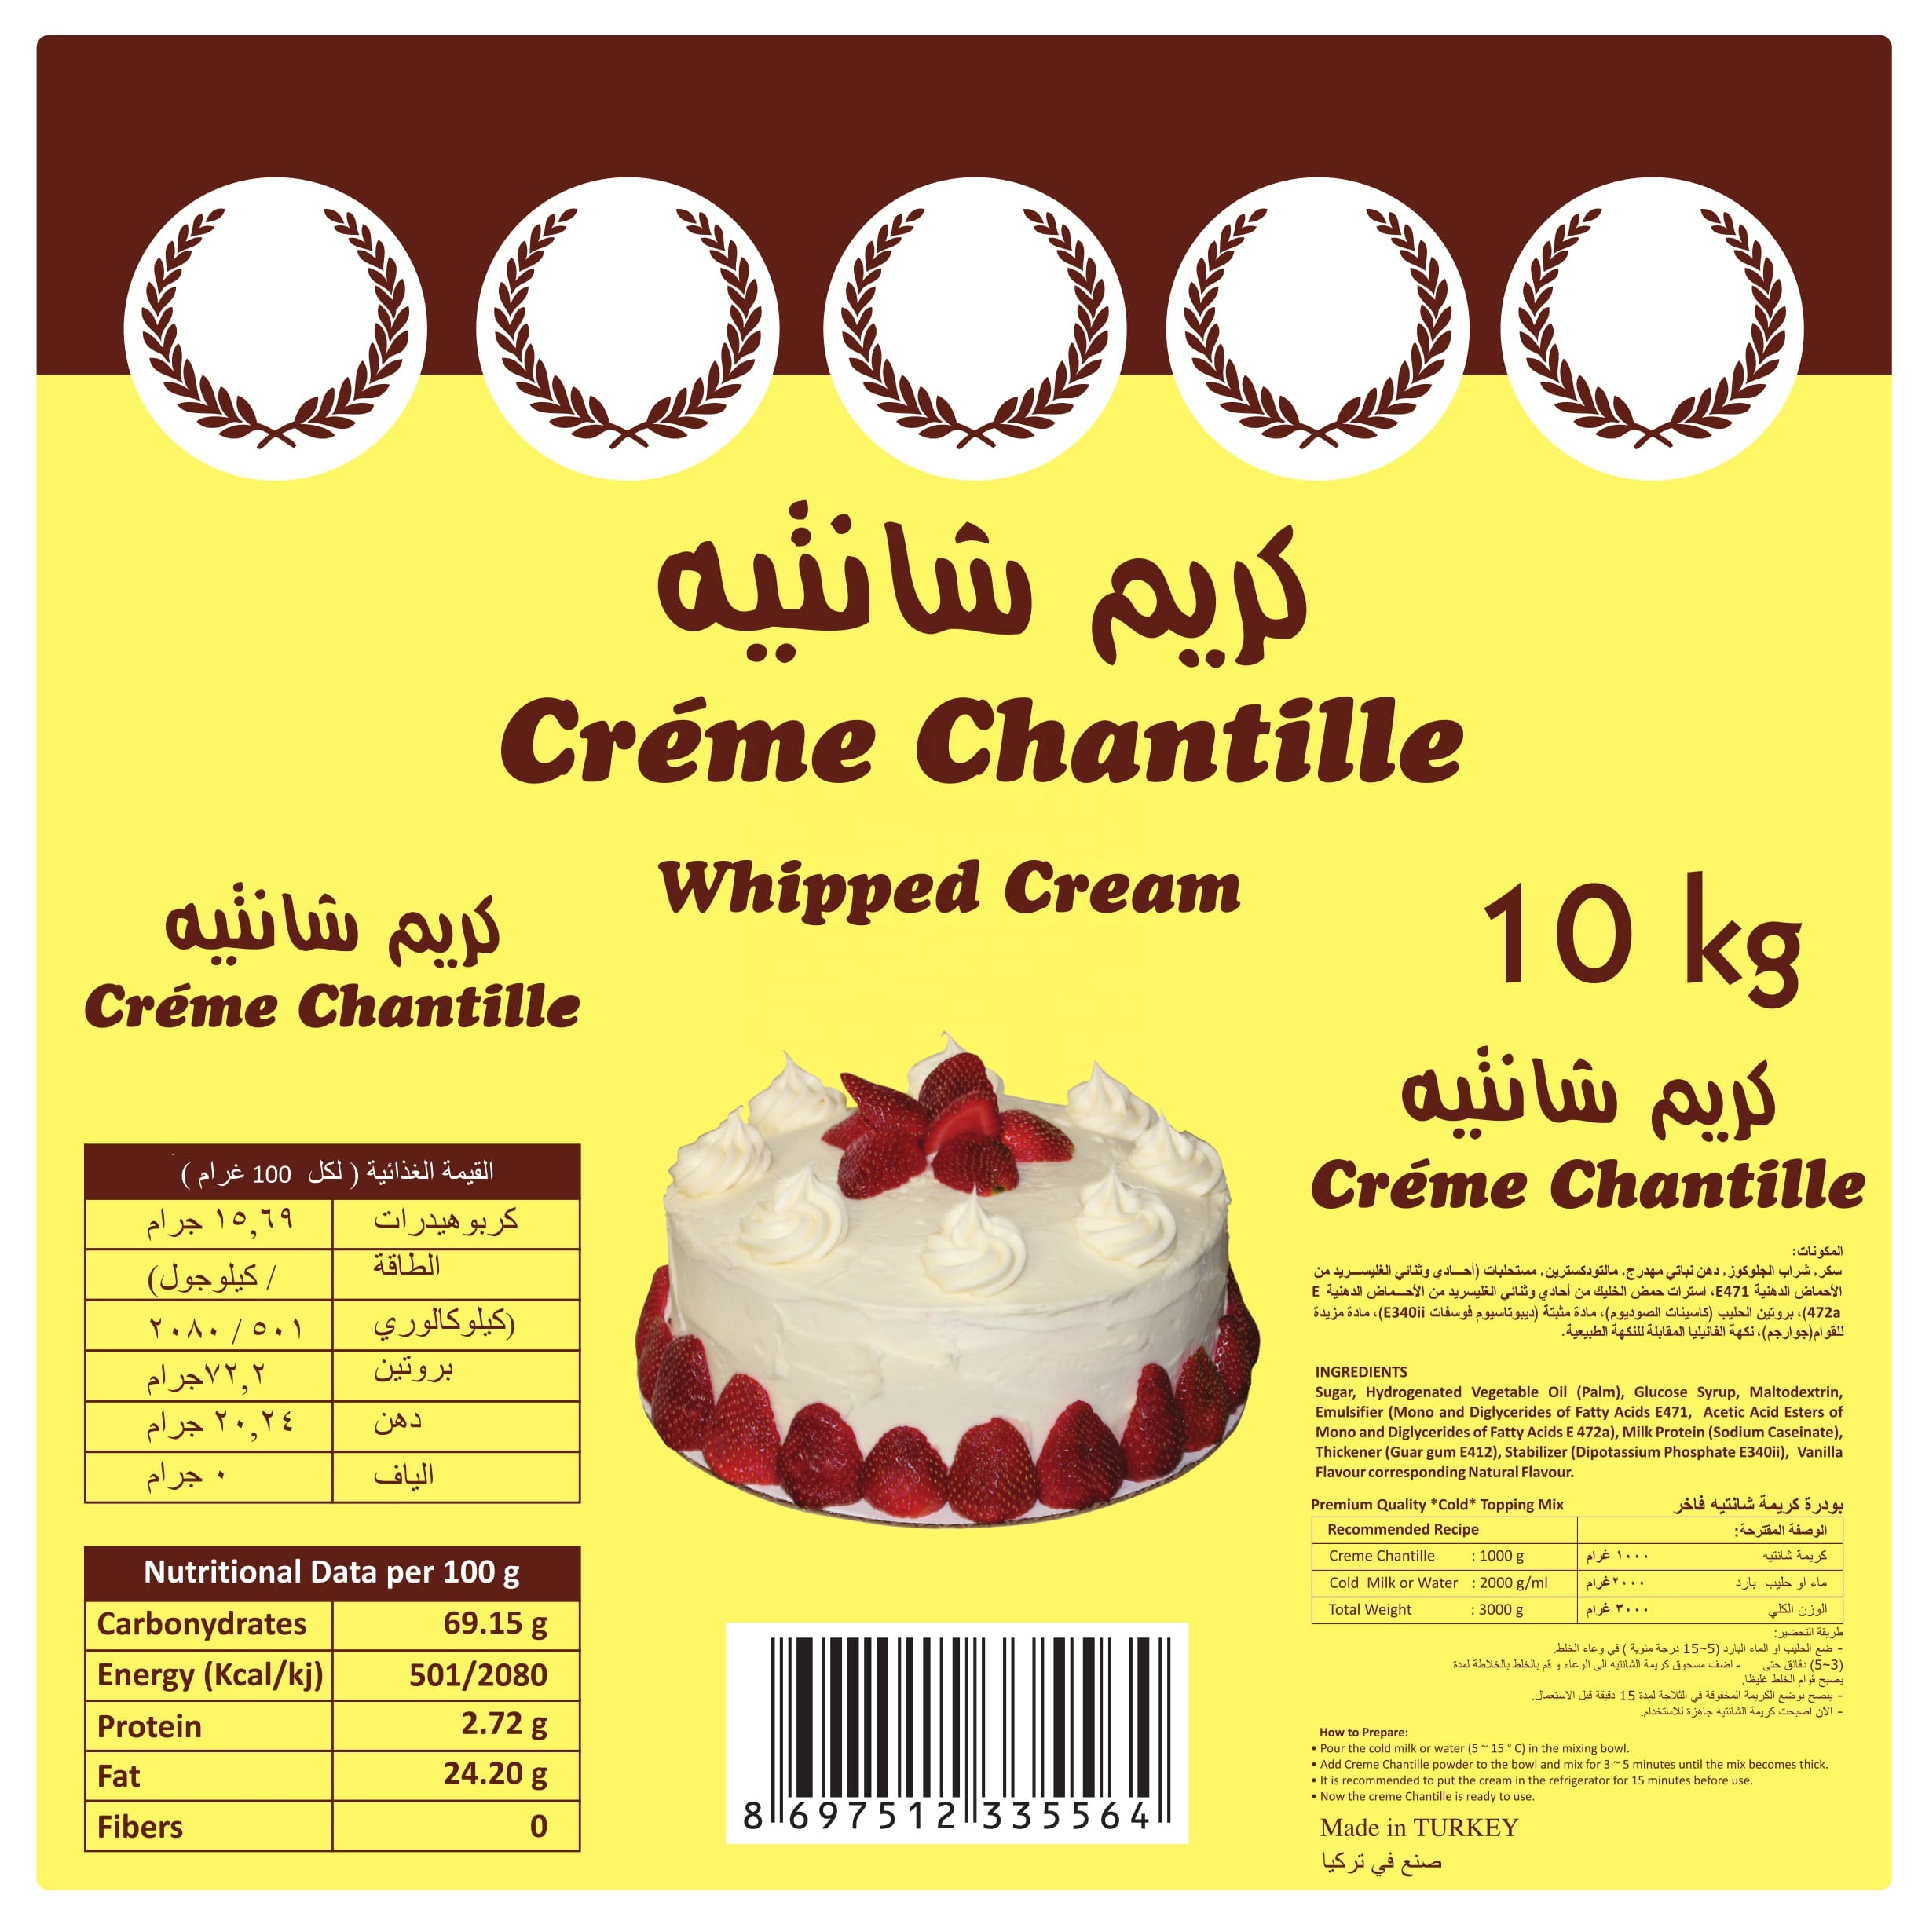 Whipped Cream Chantilly Topping Mix Buy Whipped Cream Dispenser Creme Chantilly Topping Cream Powder Product On Alibaba Com